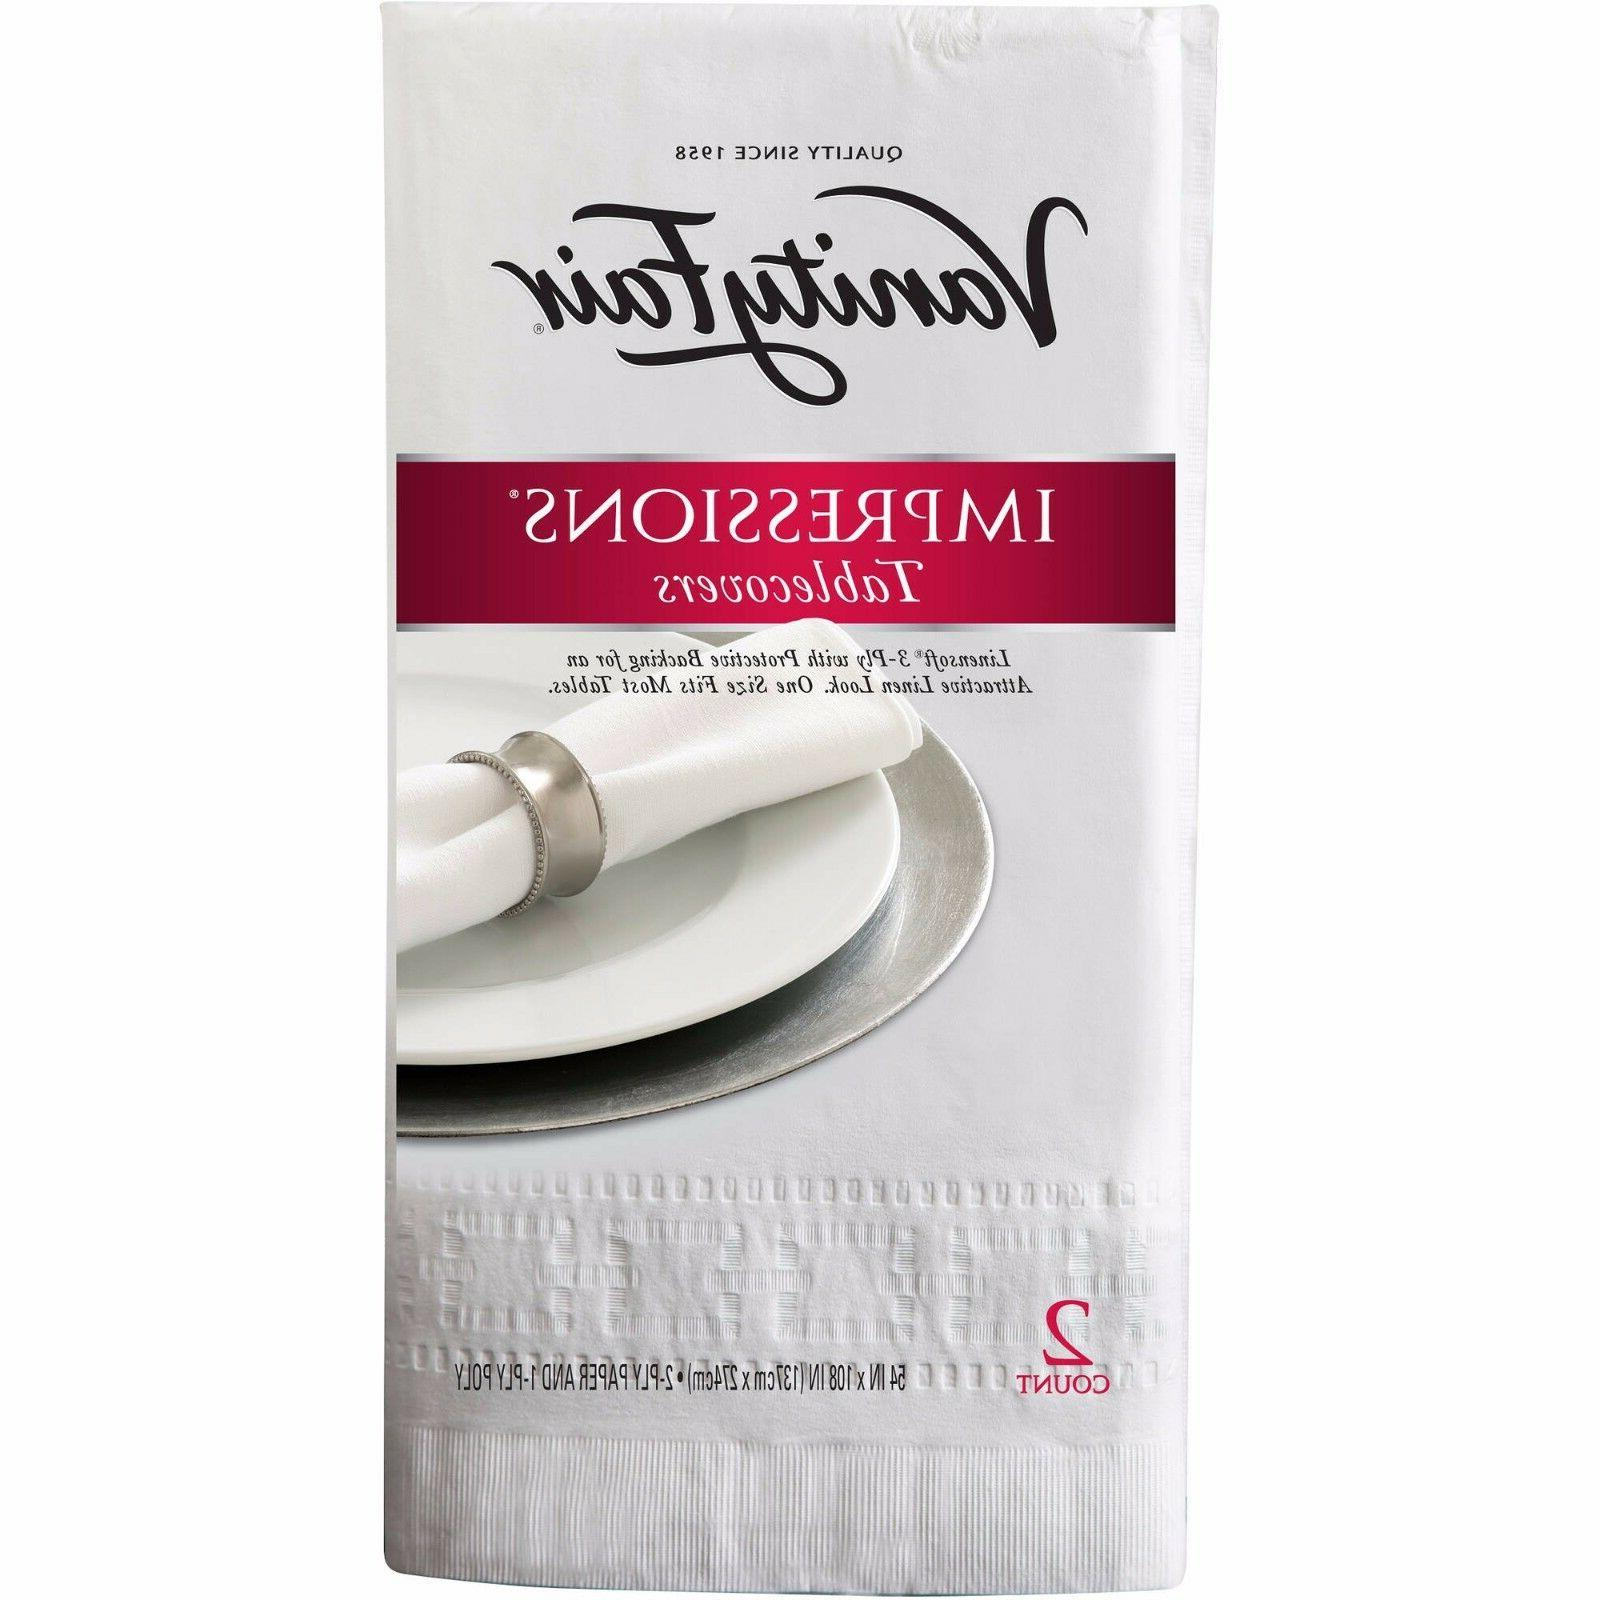 Vanity Fair Impressions Tablecovers, 2 count Banquet Paper T